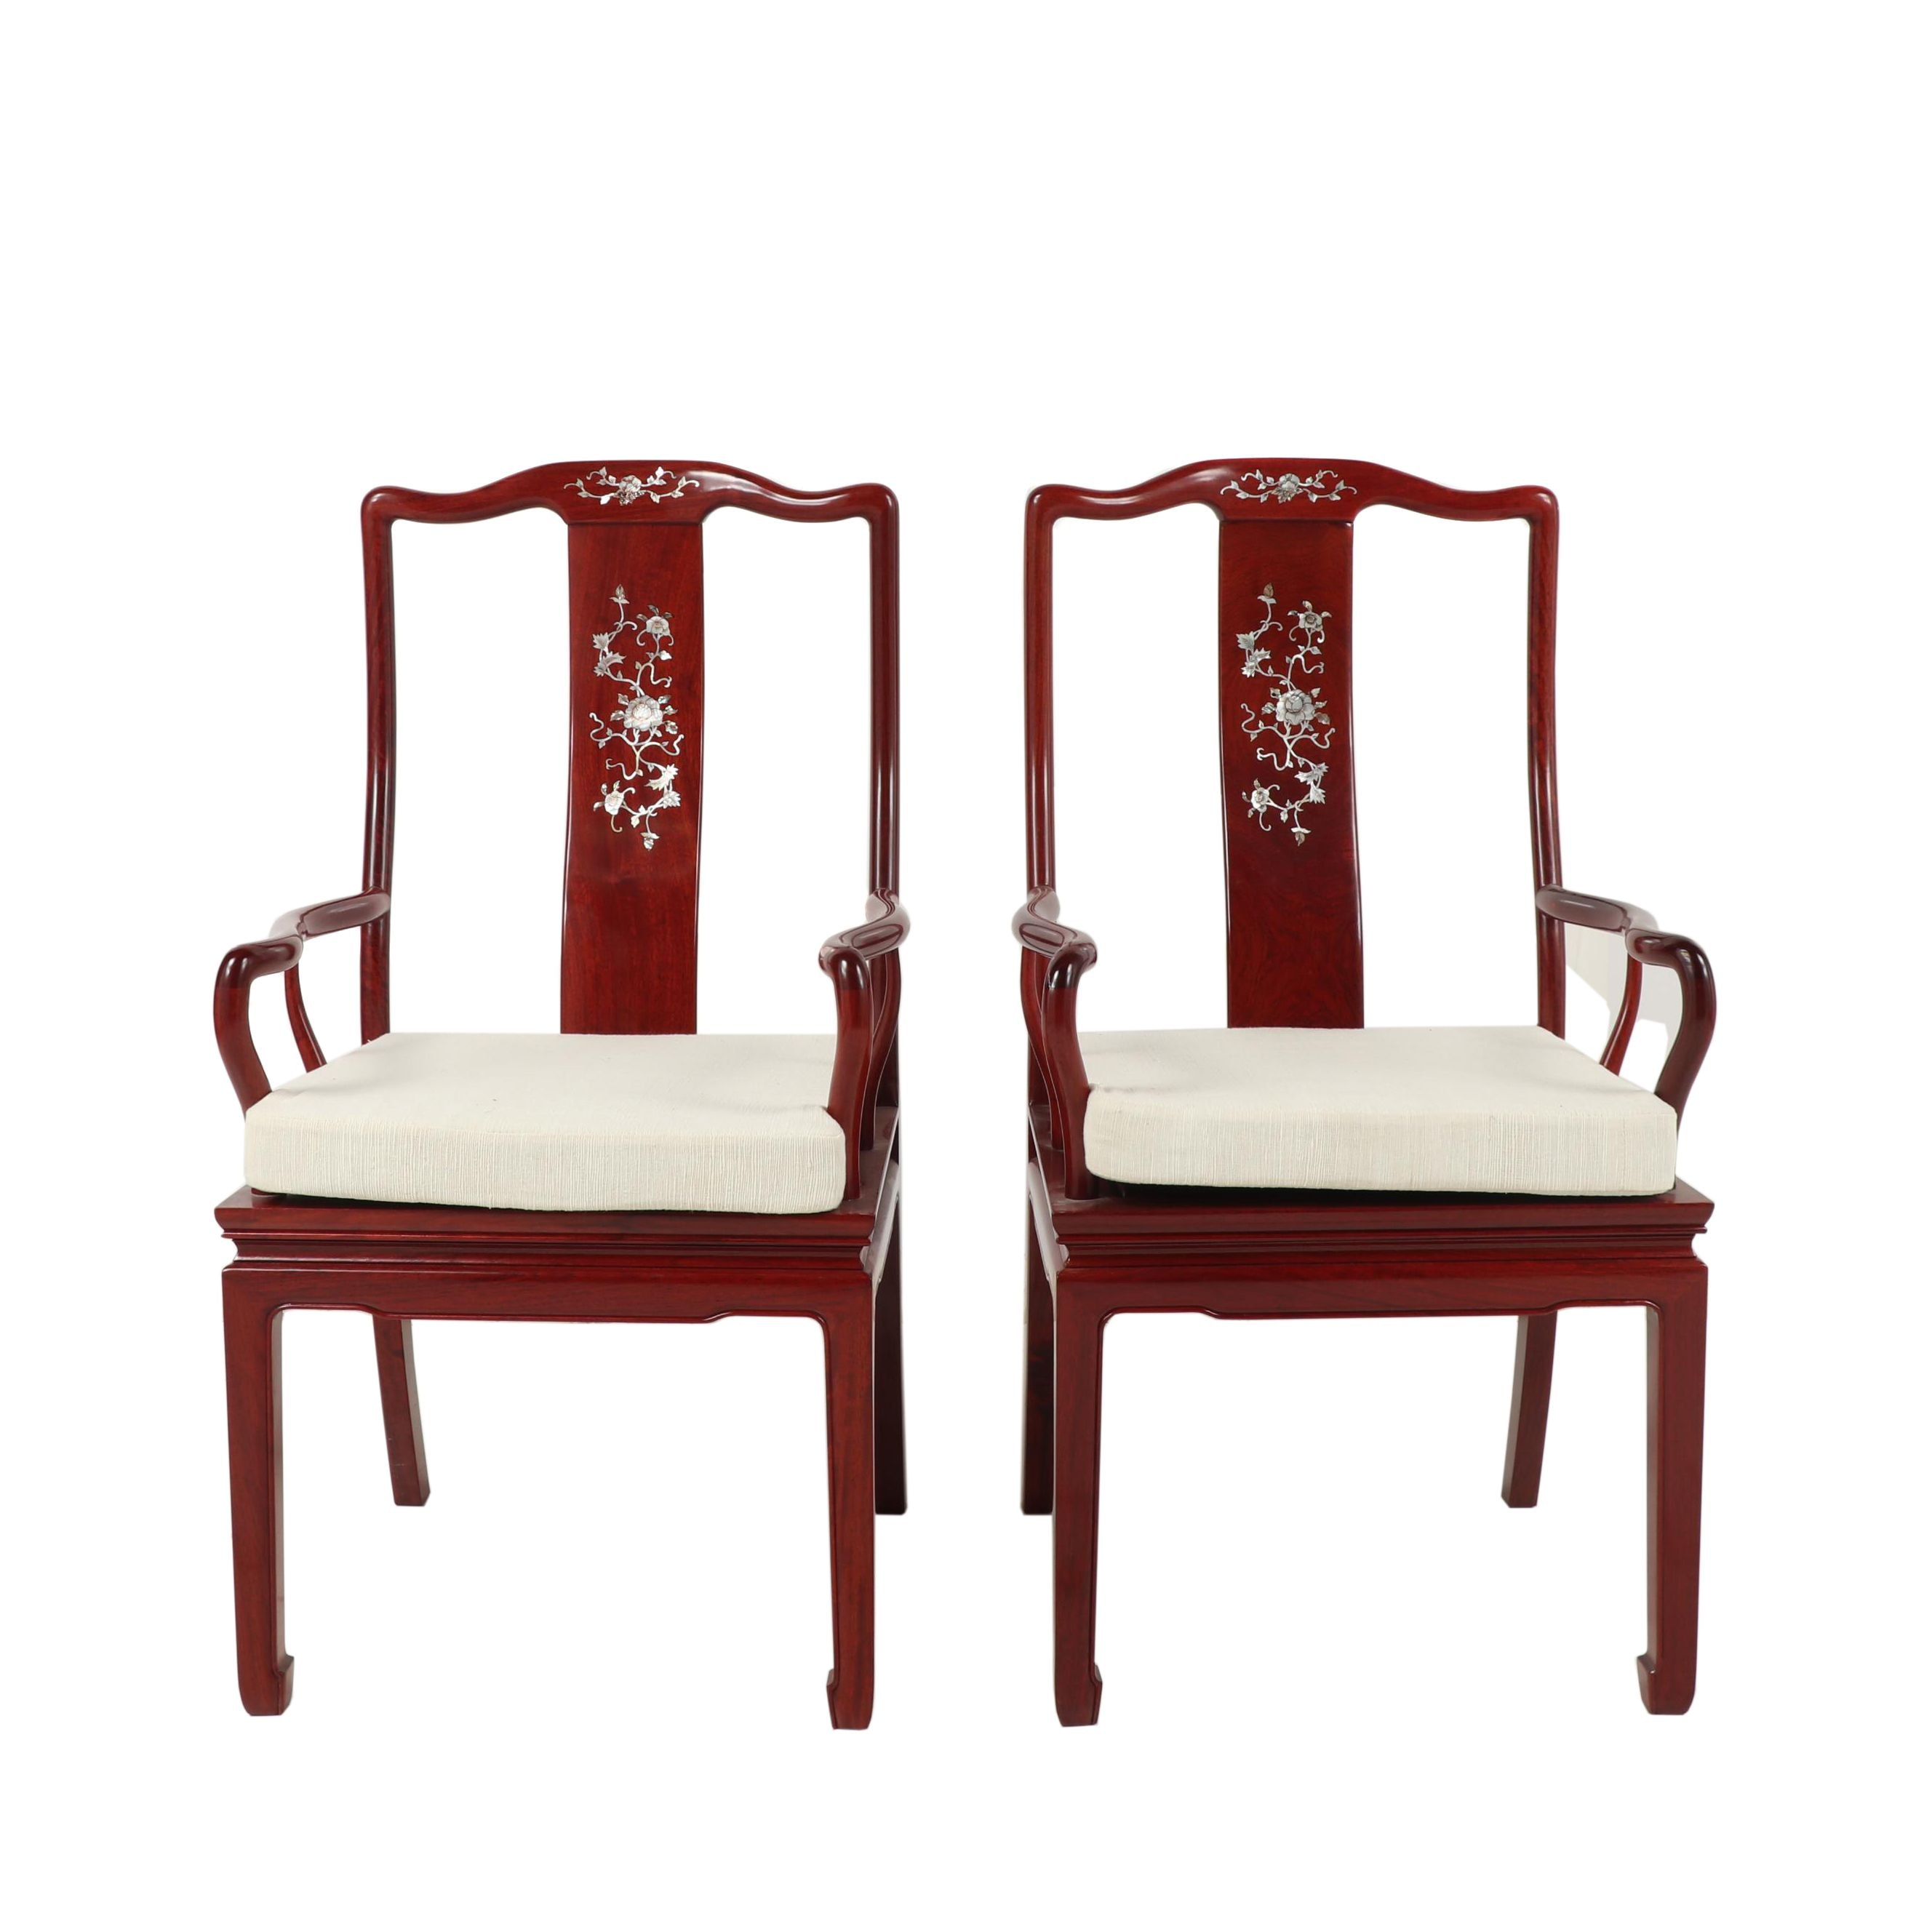 Pair of Chinese Wooden Dining Armchairs with Floral Inlay